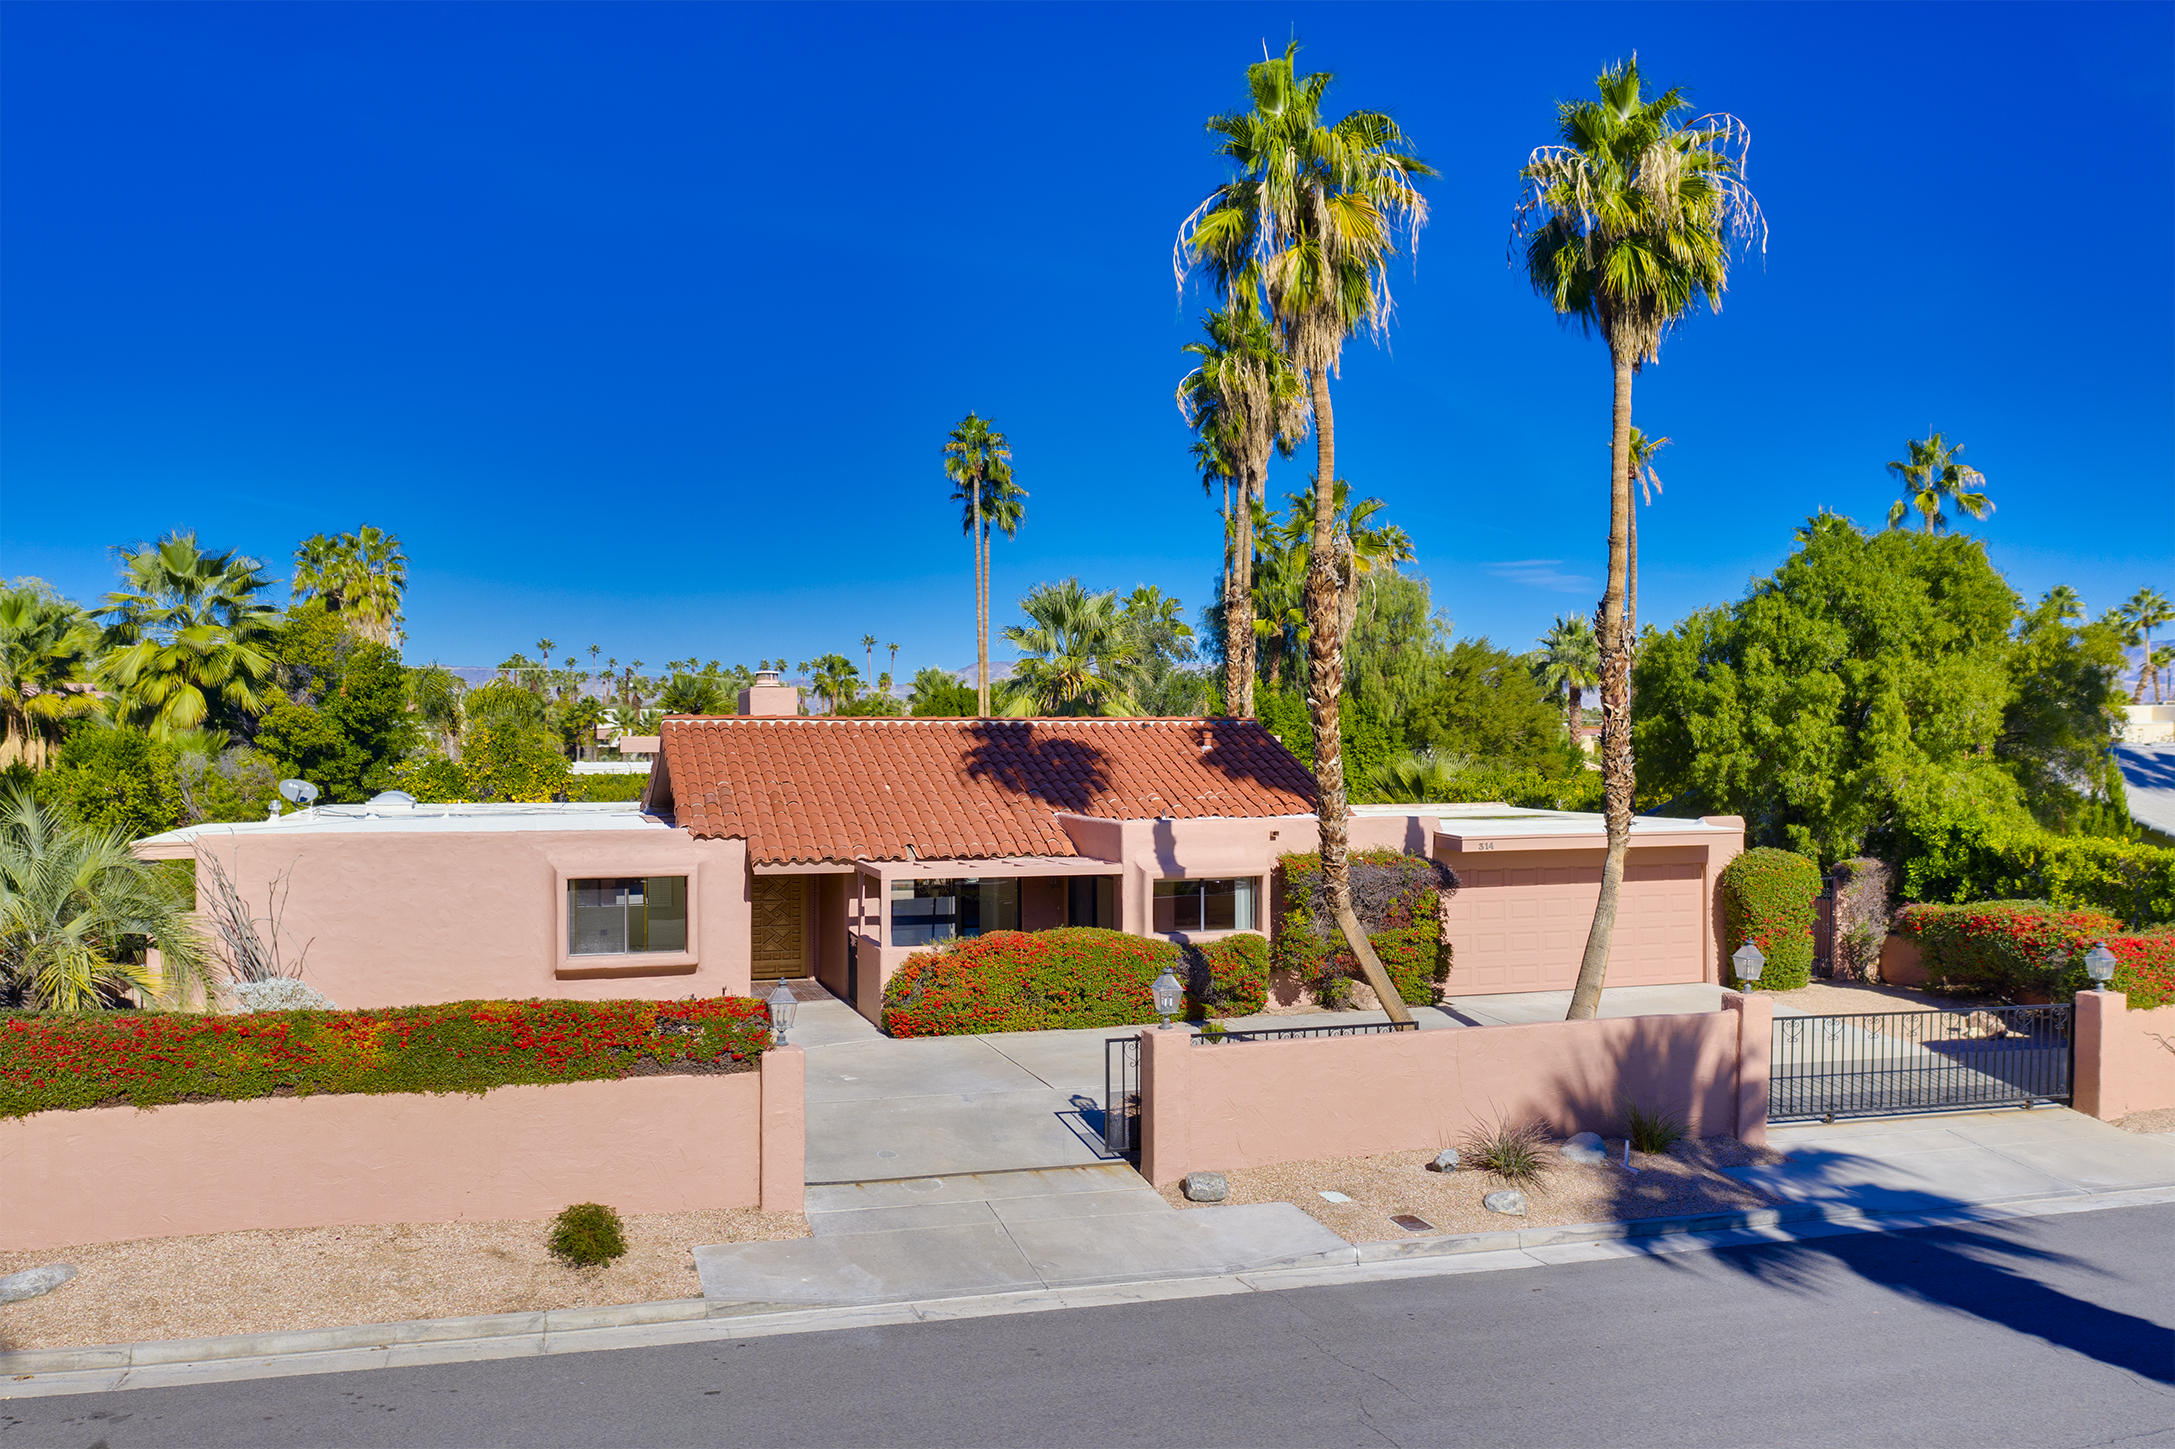 Photo of 314 W ViA Sol, Palm Springs, CA 92262